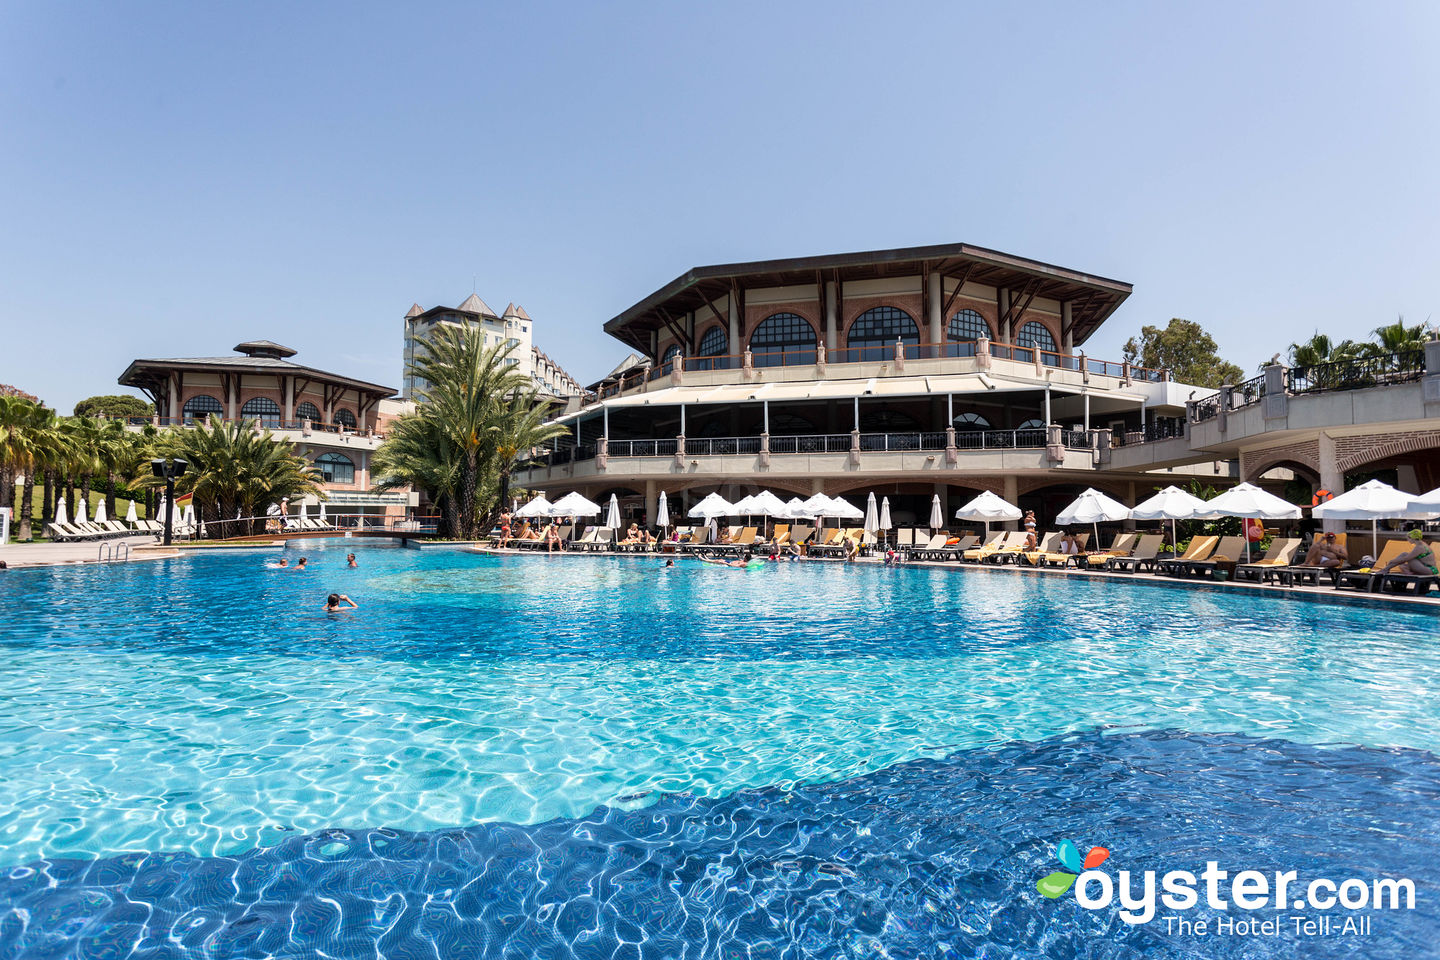 Papillon zeugma relaxury belek ets - THE BEST FOR YOUR FAMILY